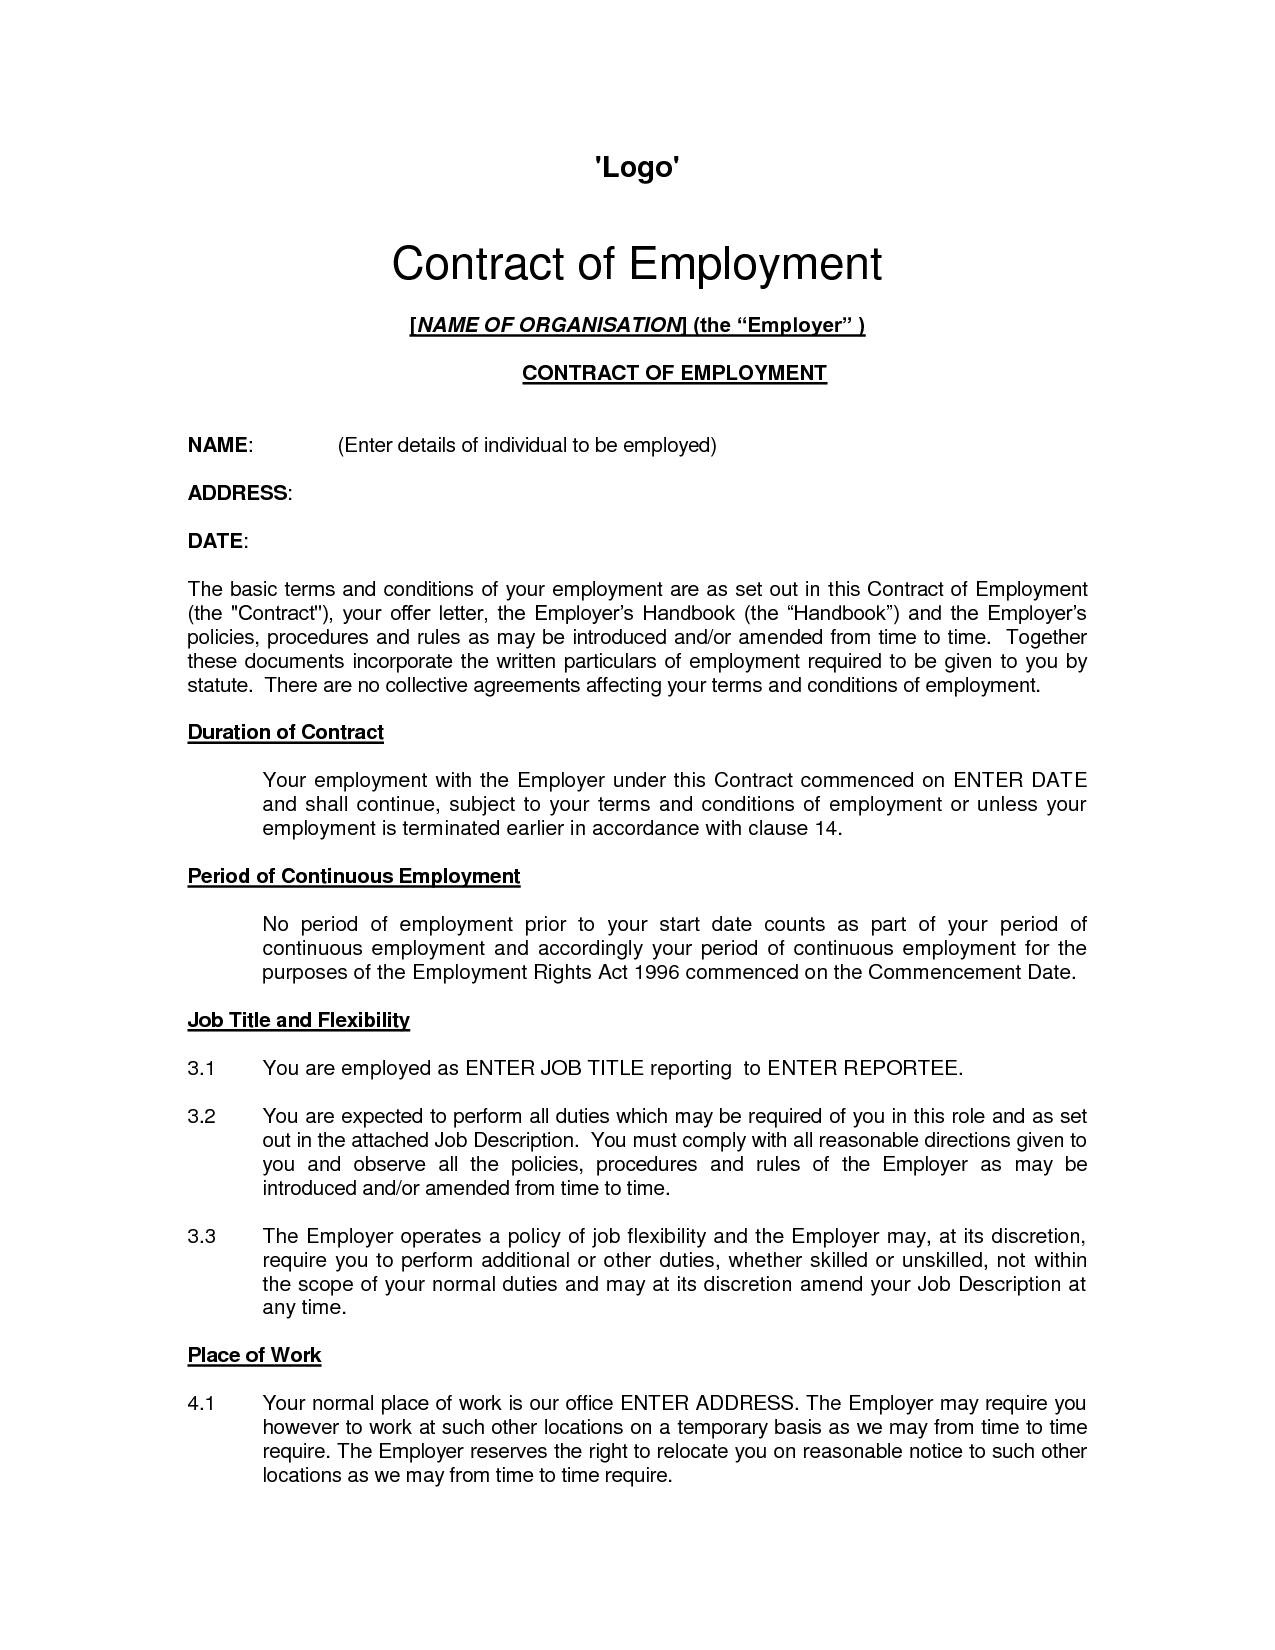 co promotion agreement template - free printable employment contract sample form generic